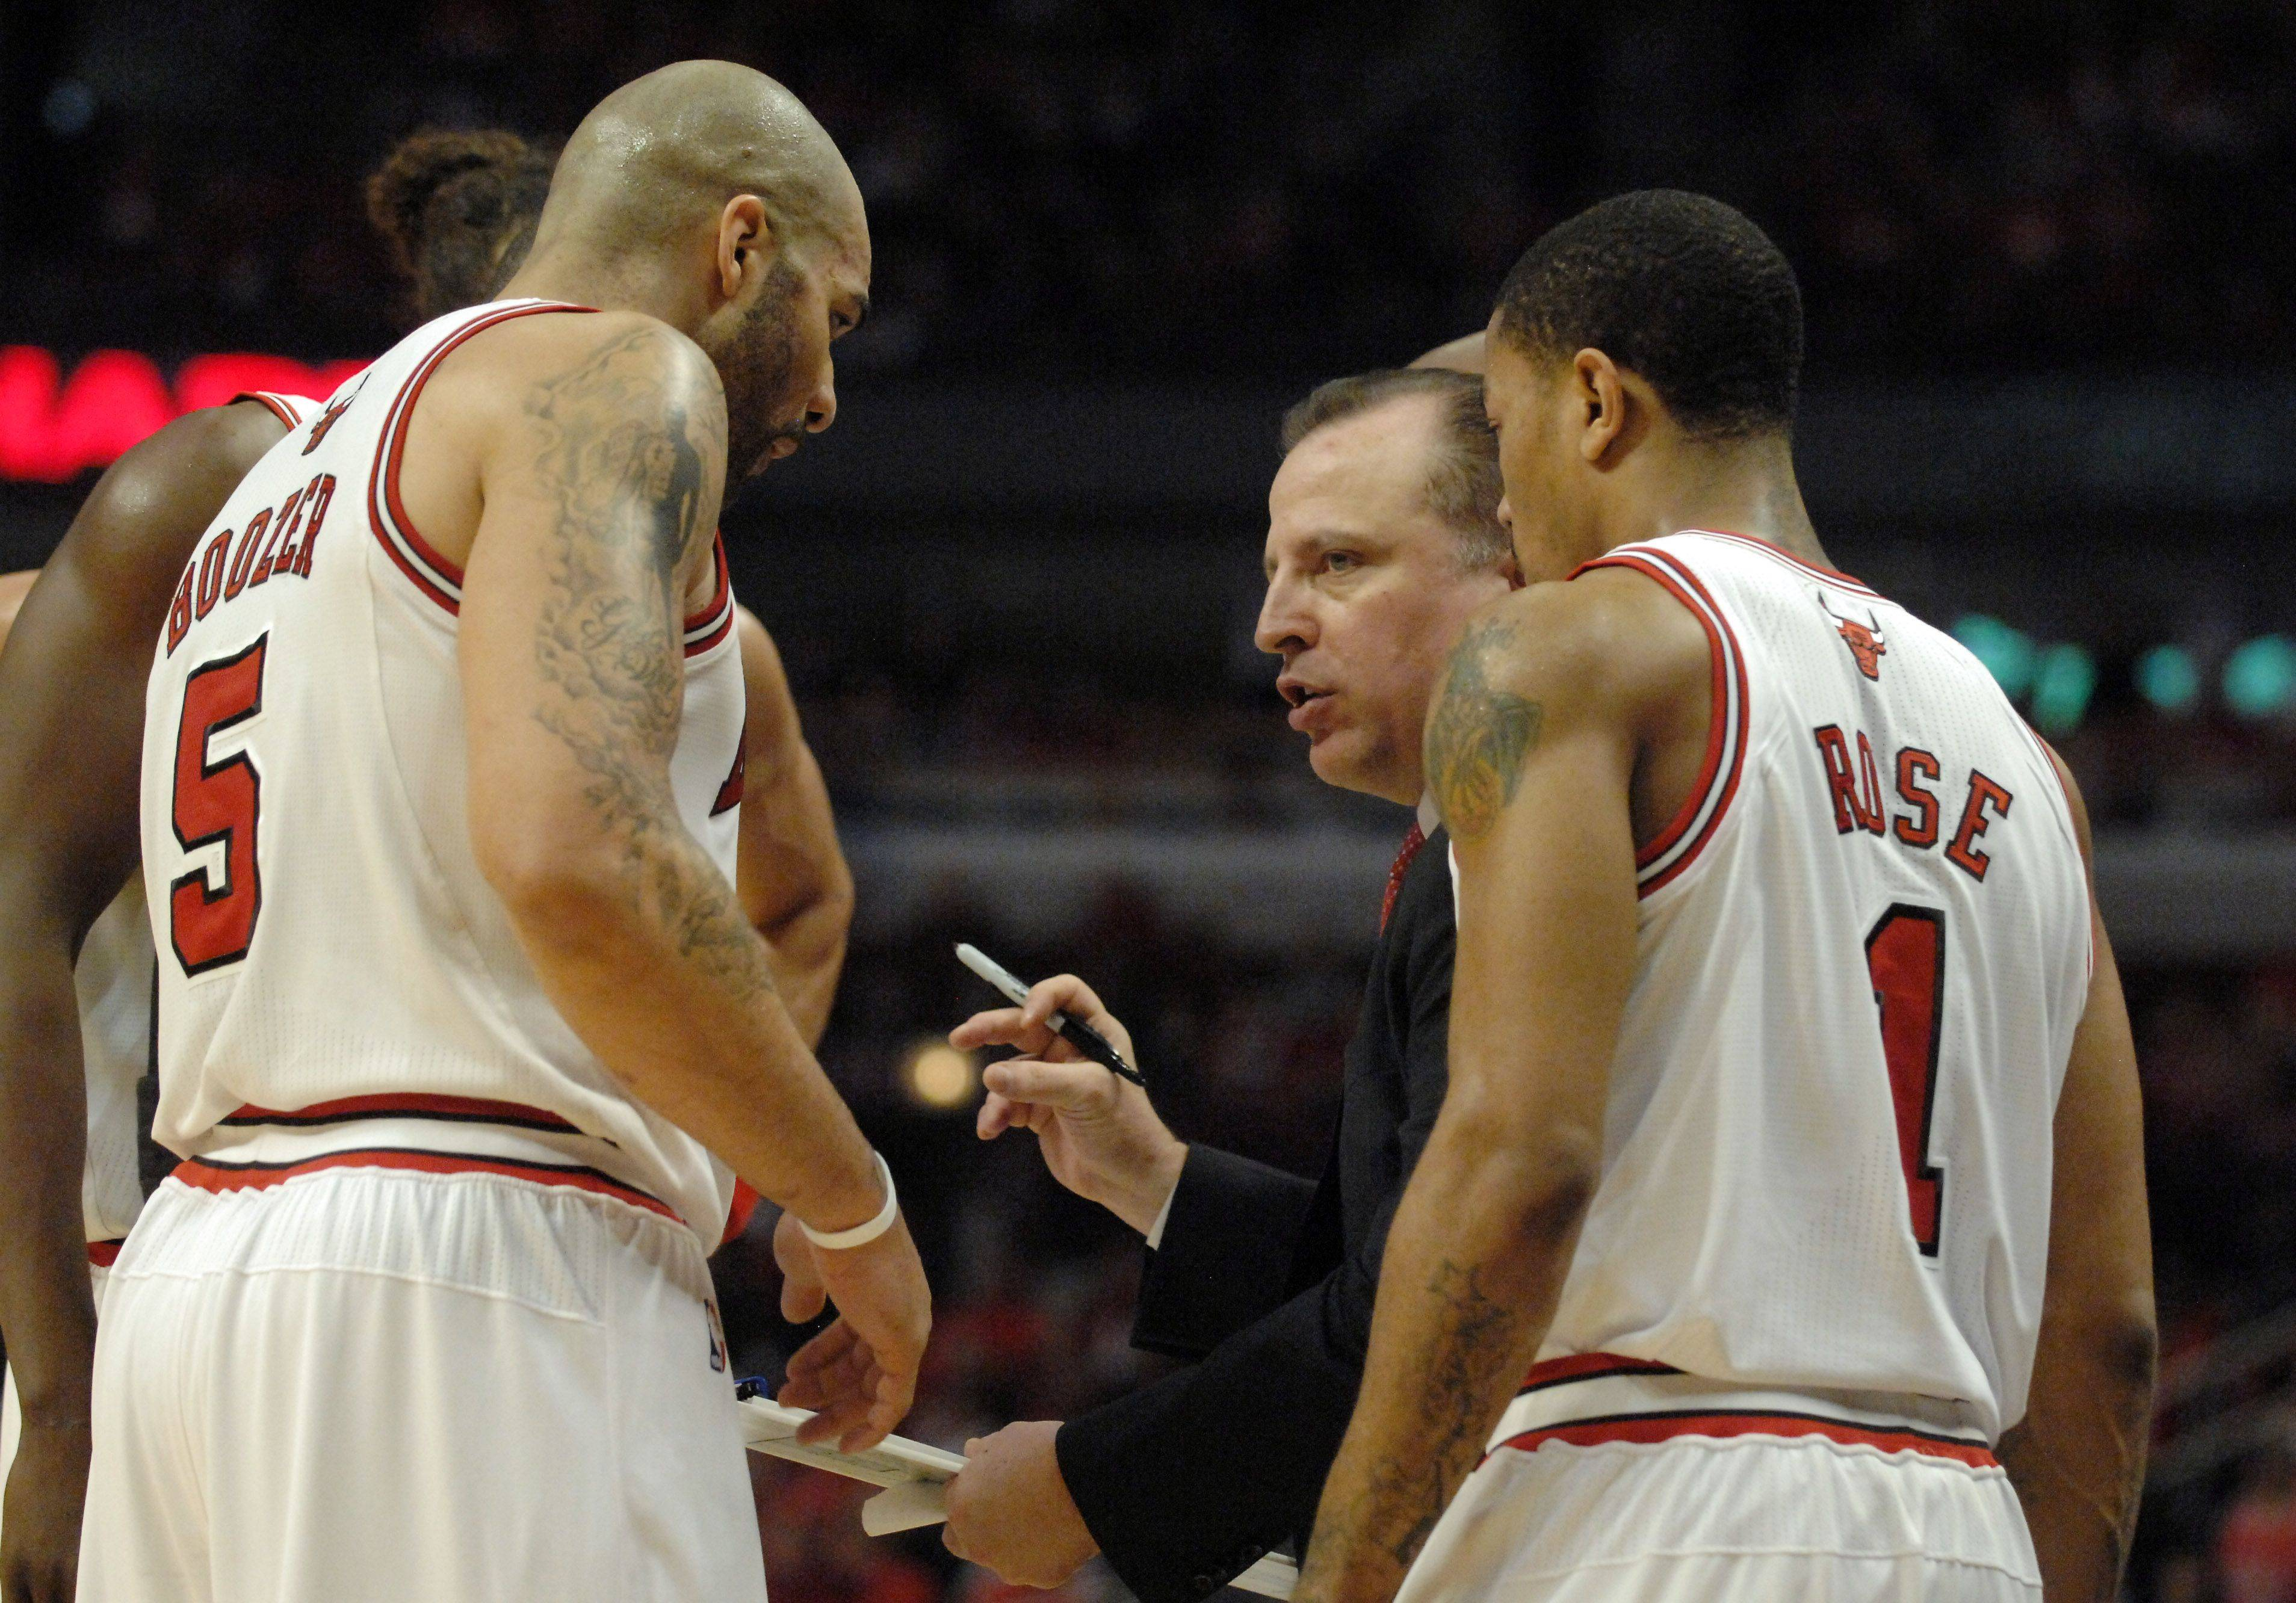 Chicago Bulls head coach Tom Thibodeau goes over a play with his team during Game One of the NBA Eastern Conference Quarterfinals Saturday at the United Center in Chicago.